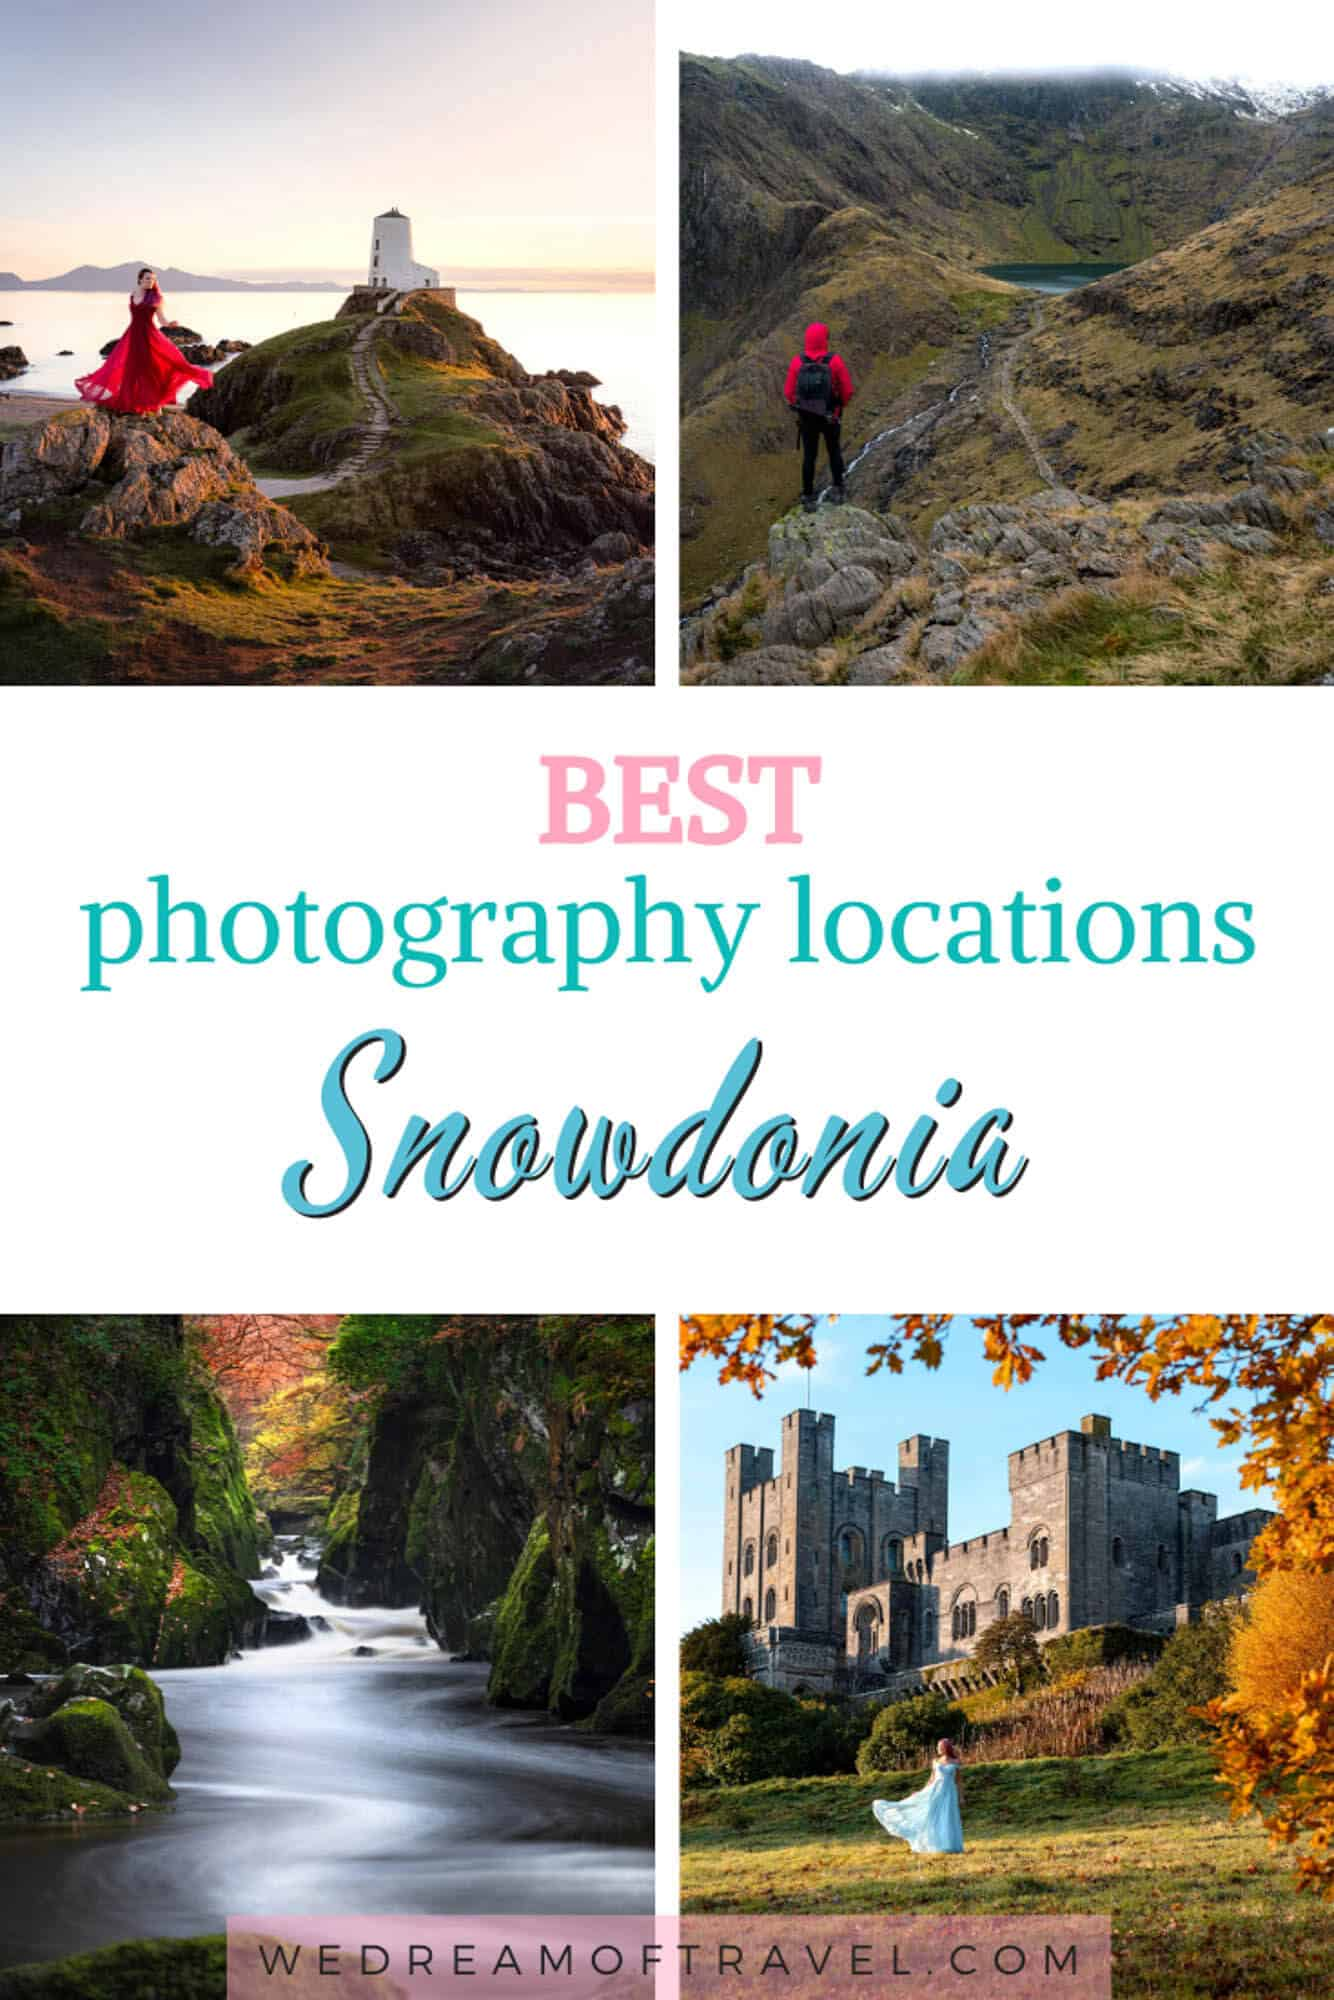 Best photography locations Snowdonia.  This photography guide will help inspire you for your trip to Snowdonia National Park.  With all the best places to photograph and capture those perfect Snowdonia Wales pictures.  #photography #travelguide #thingstodo #snowdonia #wales #unitedkingdom